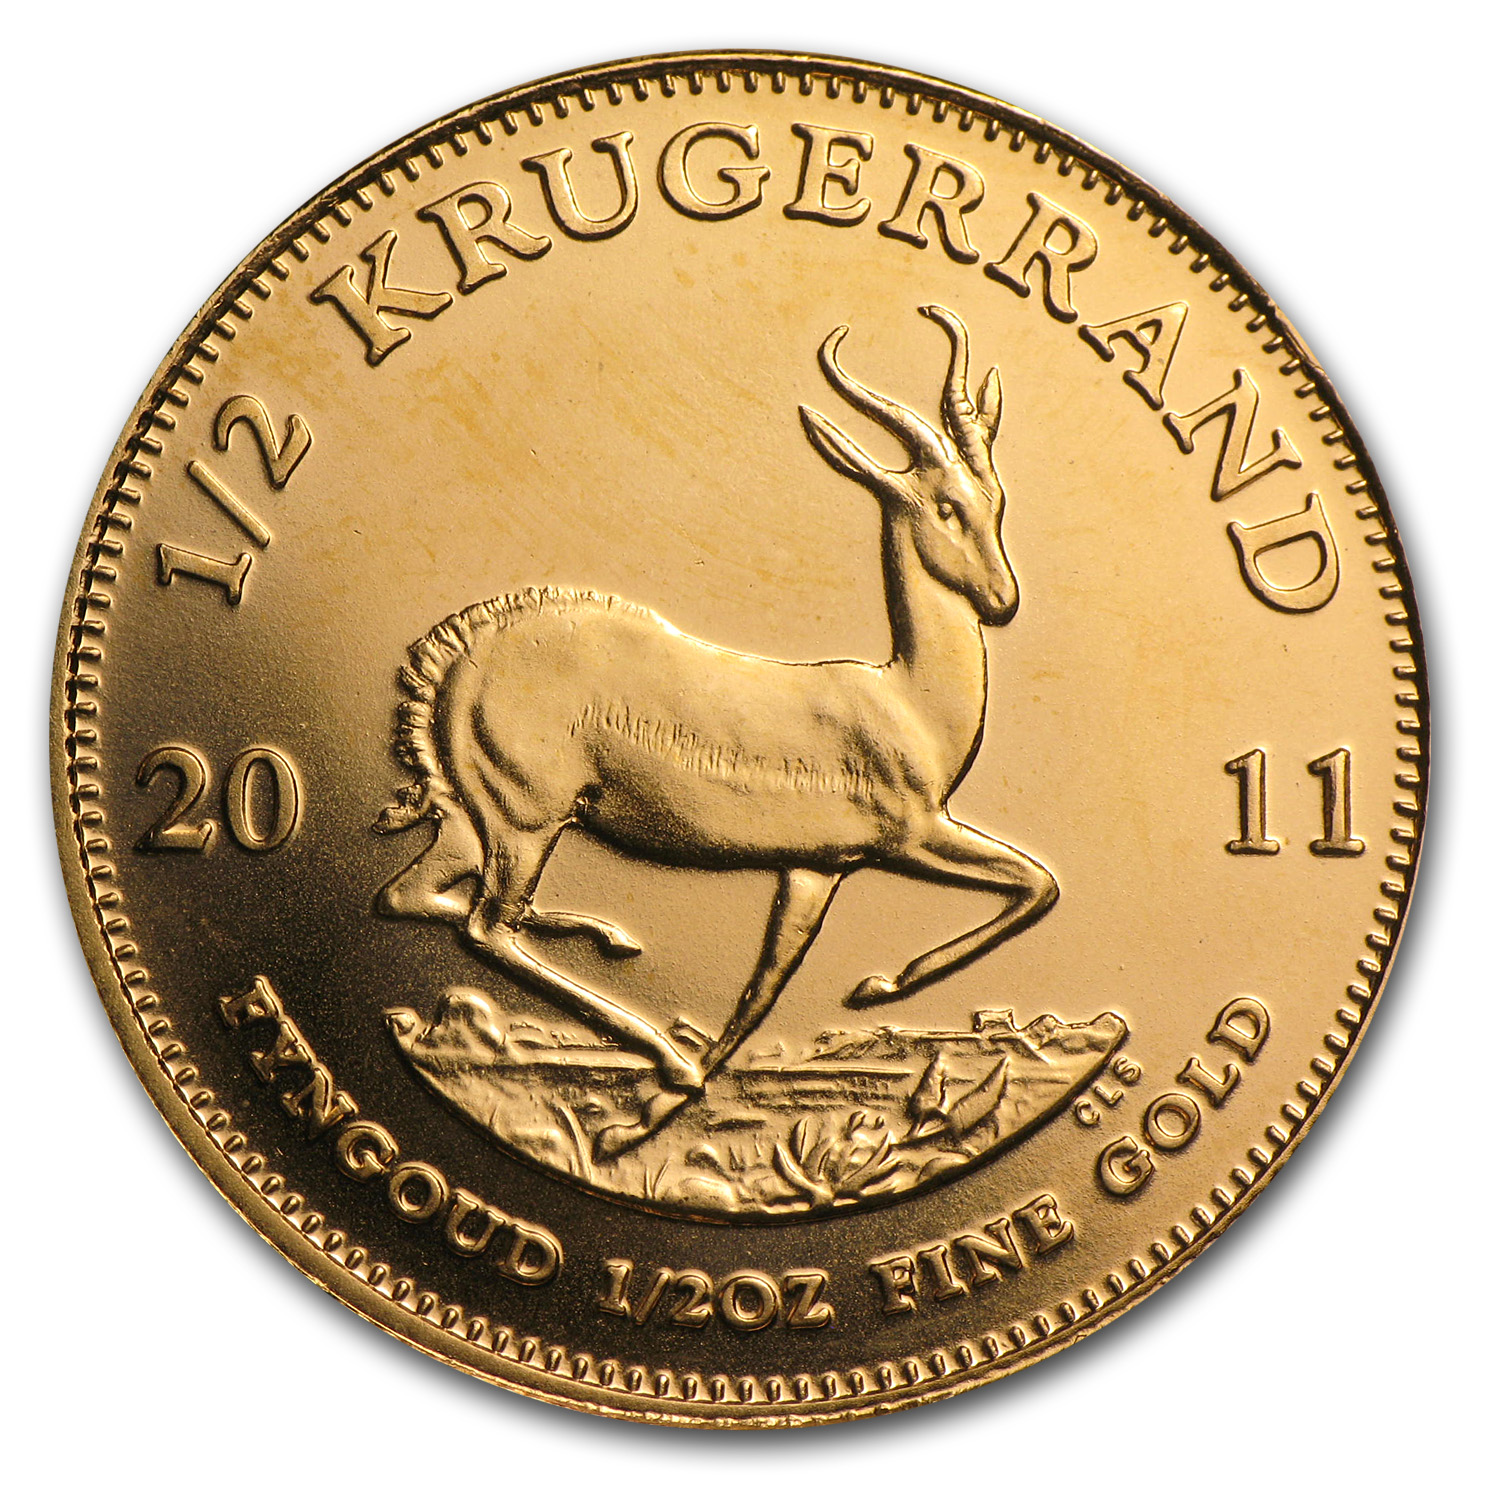 2011 South Africa 1/2 oz Gold Krugerrand